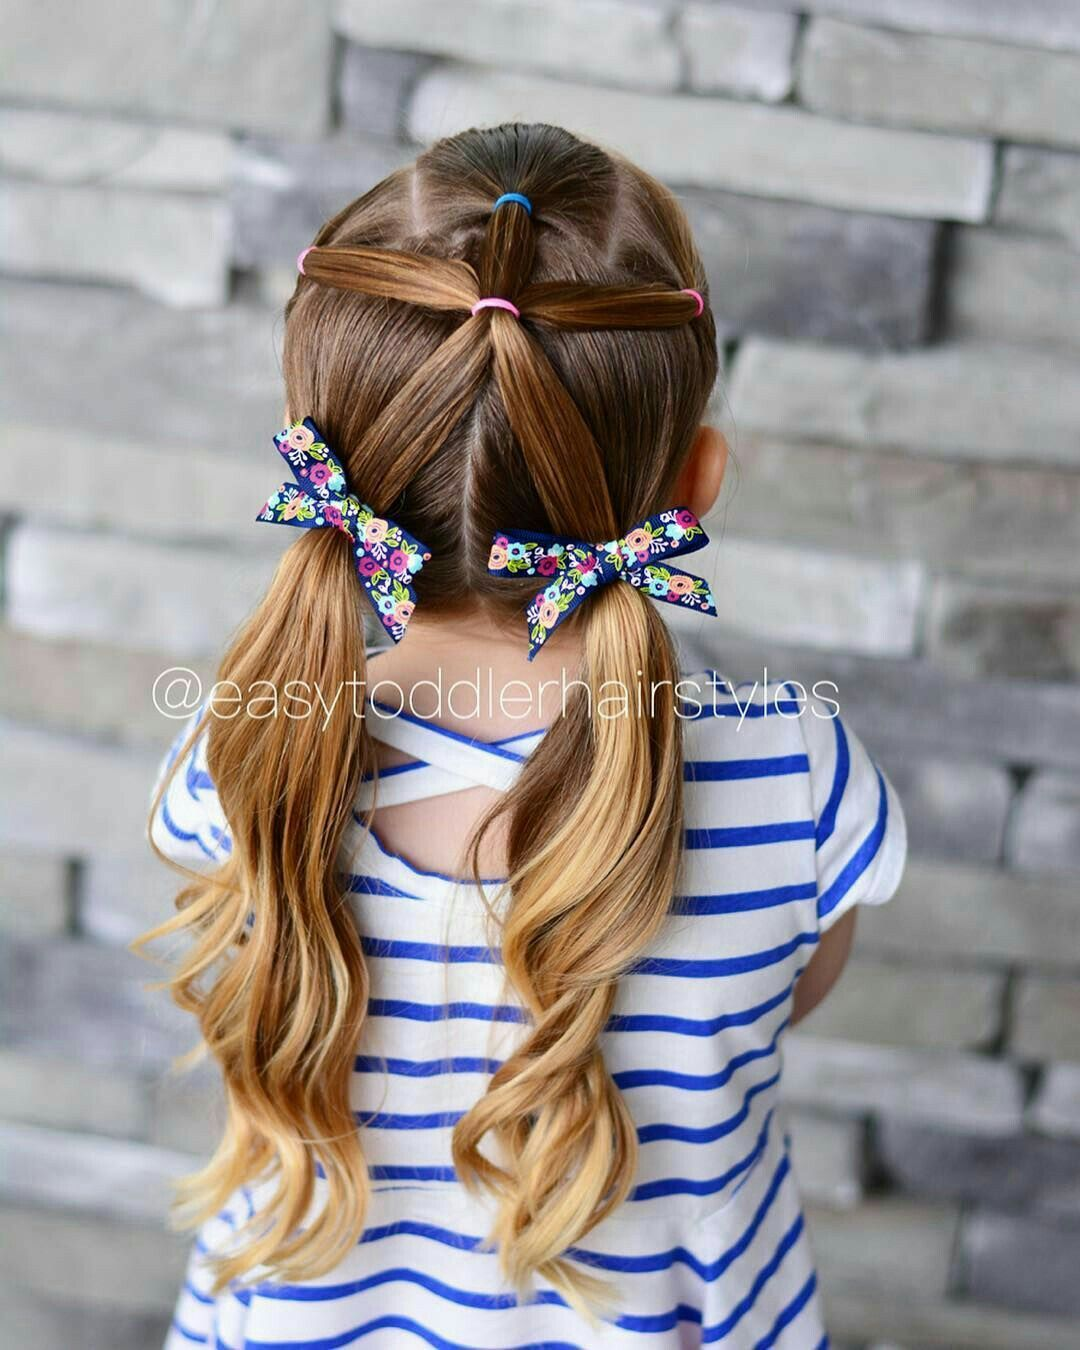 Hairstyle For Nevaeh Little Girl Hairstyles Kids Hairstyles Girls Kids Hairstyles